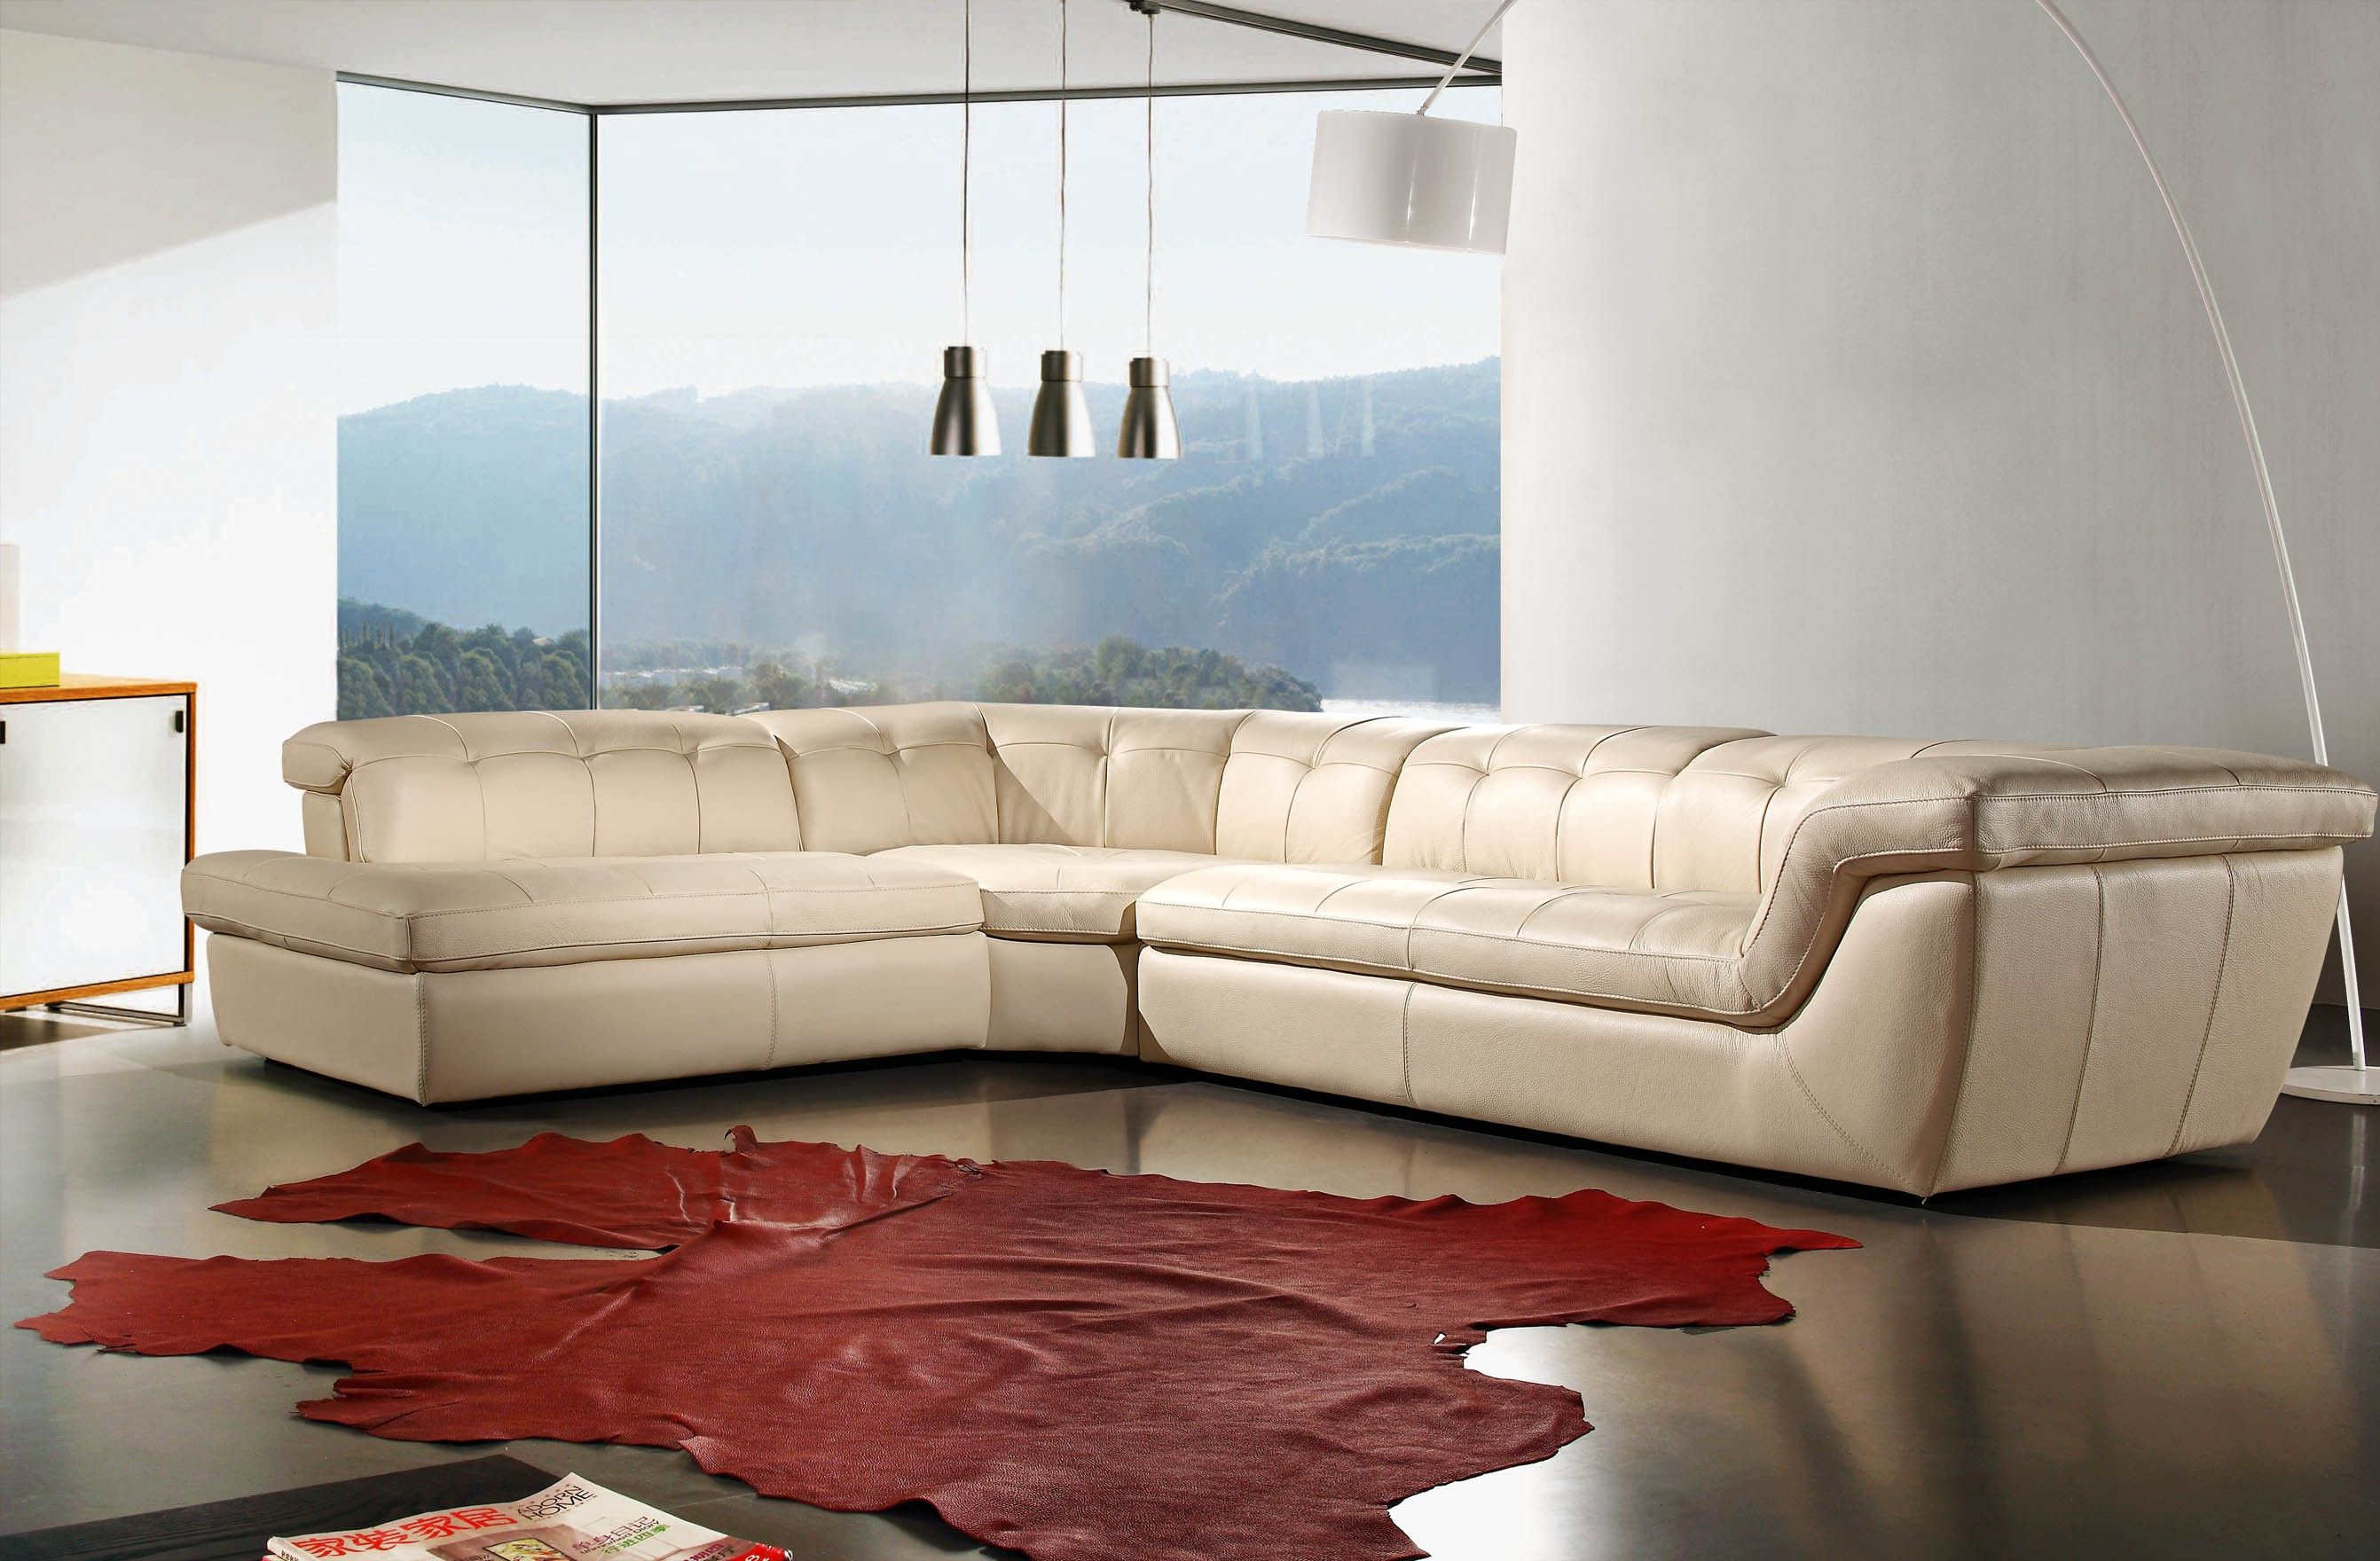 Living Room Design With Sectional Sofa Amazing American Contemporary Sofa 10 Тыс Изображений Найдено В Яндекс Inspiration Design